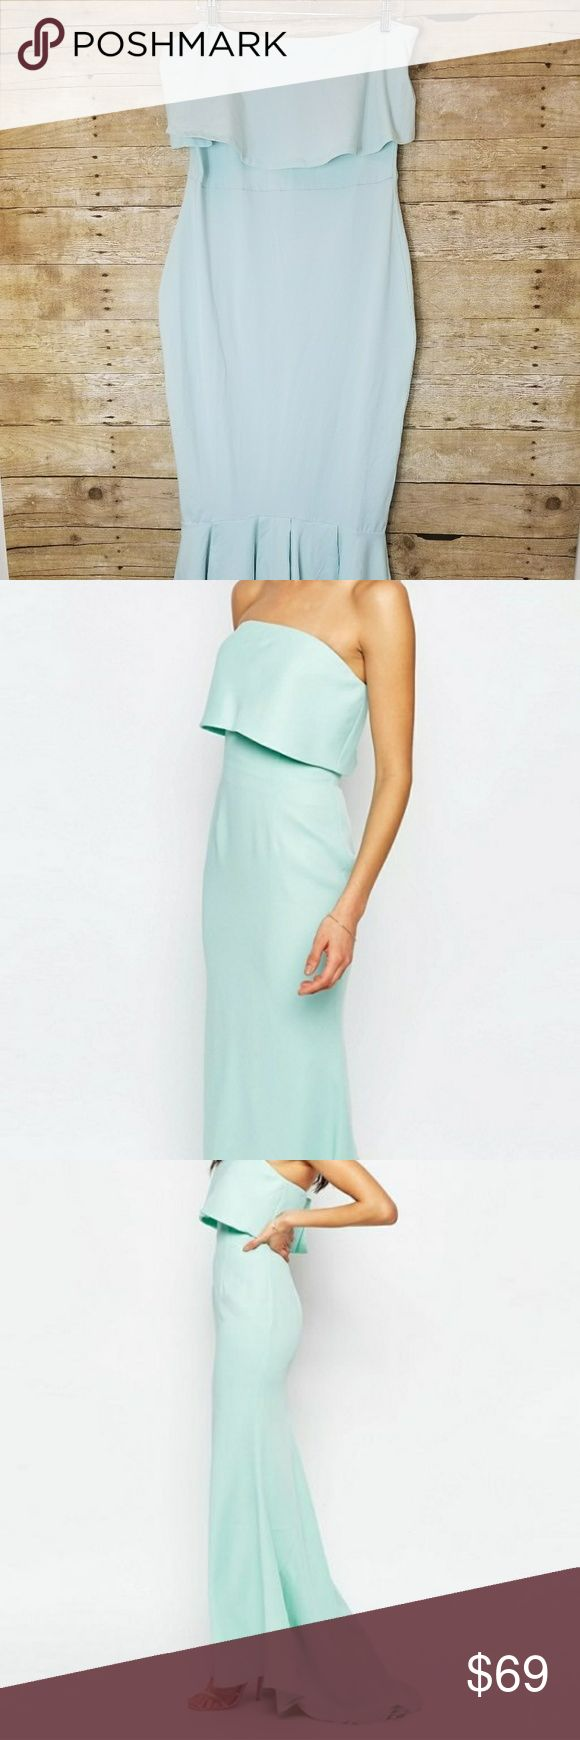 ASOS Jarlo Mermaid Gown Mint NWT Asos Jarlo Ball Gown. U.S. size 12 tall. Beautiful mint green strapless top, with long mermaid tail skirt. Gorgeous light weight fabric. Perfect for a ball gown, prom, holiday or bridesmaid dress.  Hips: 19 in flat Upper waist: 15 in flat Legnth: 48 in ASOS Dresses Maxi